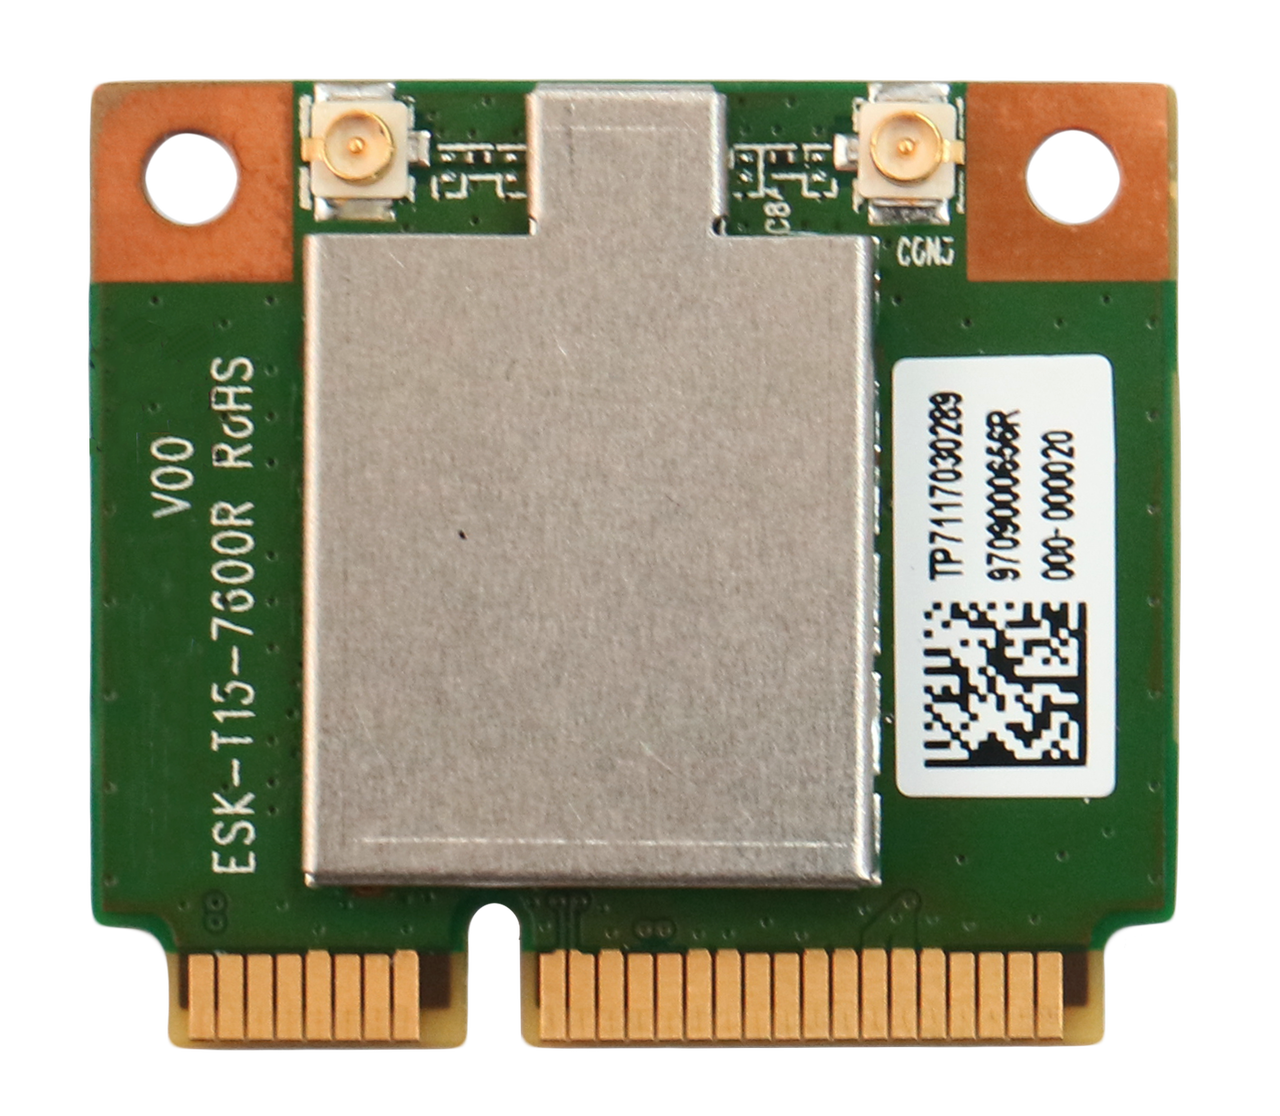 Top Five Qualcomm Atheros Qca9377 Wireless Lan Driver Windows 7 - Circus